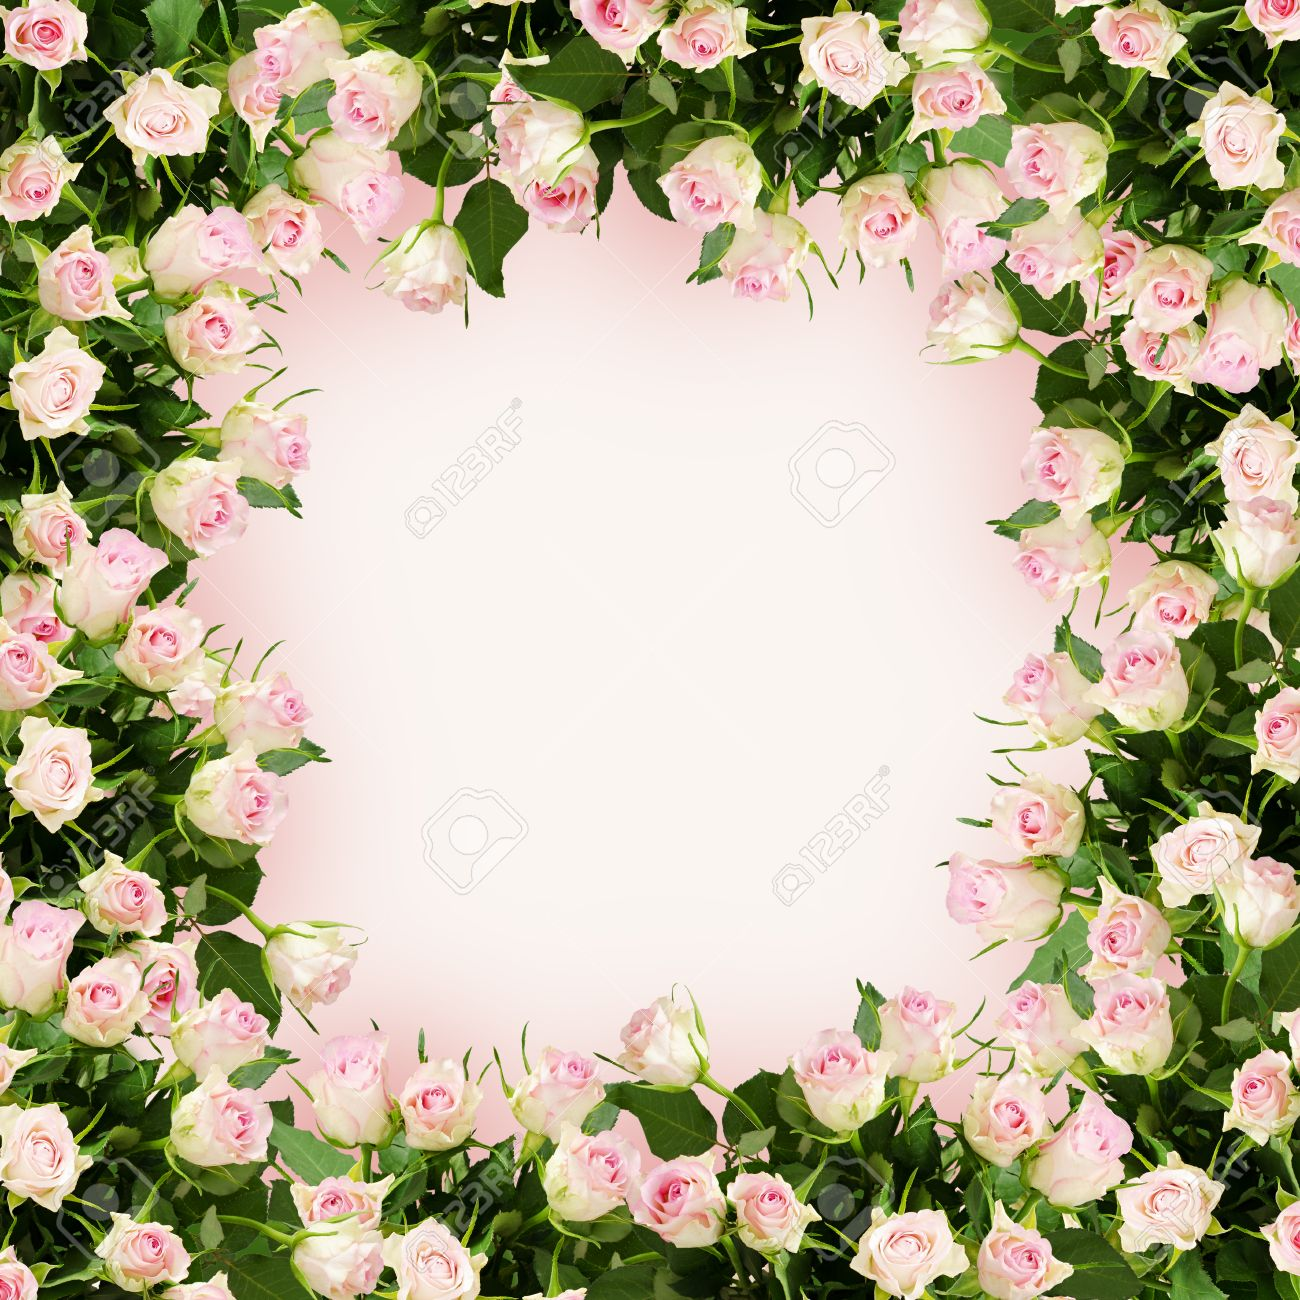 Beautiful White And Pink Rose Flowers Frame On Pink Background Stock ...